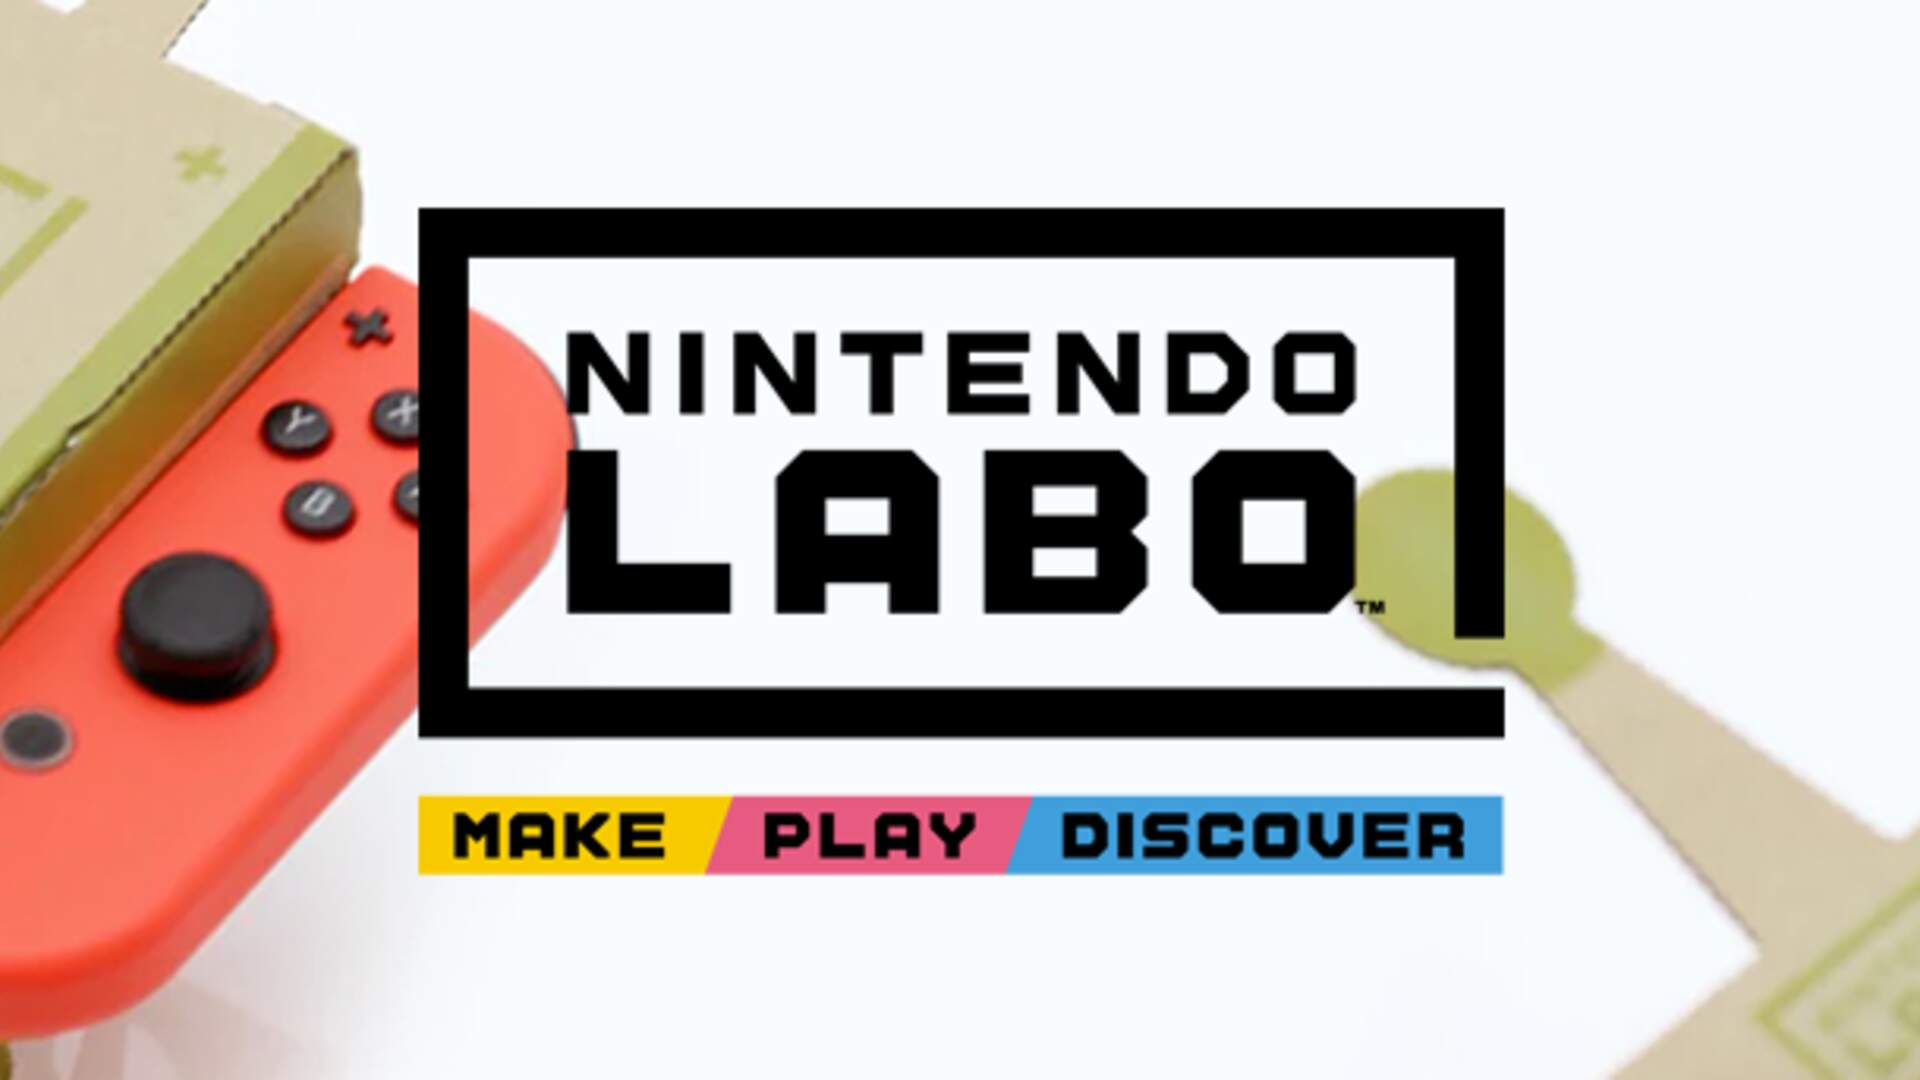 Nintendo Labo has a Built-In Plan for Replacing Lost Parts